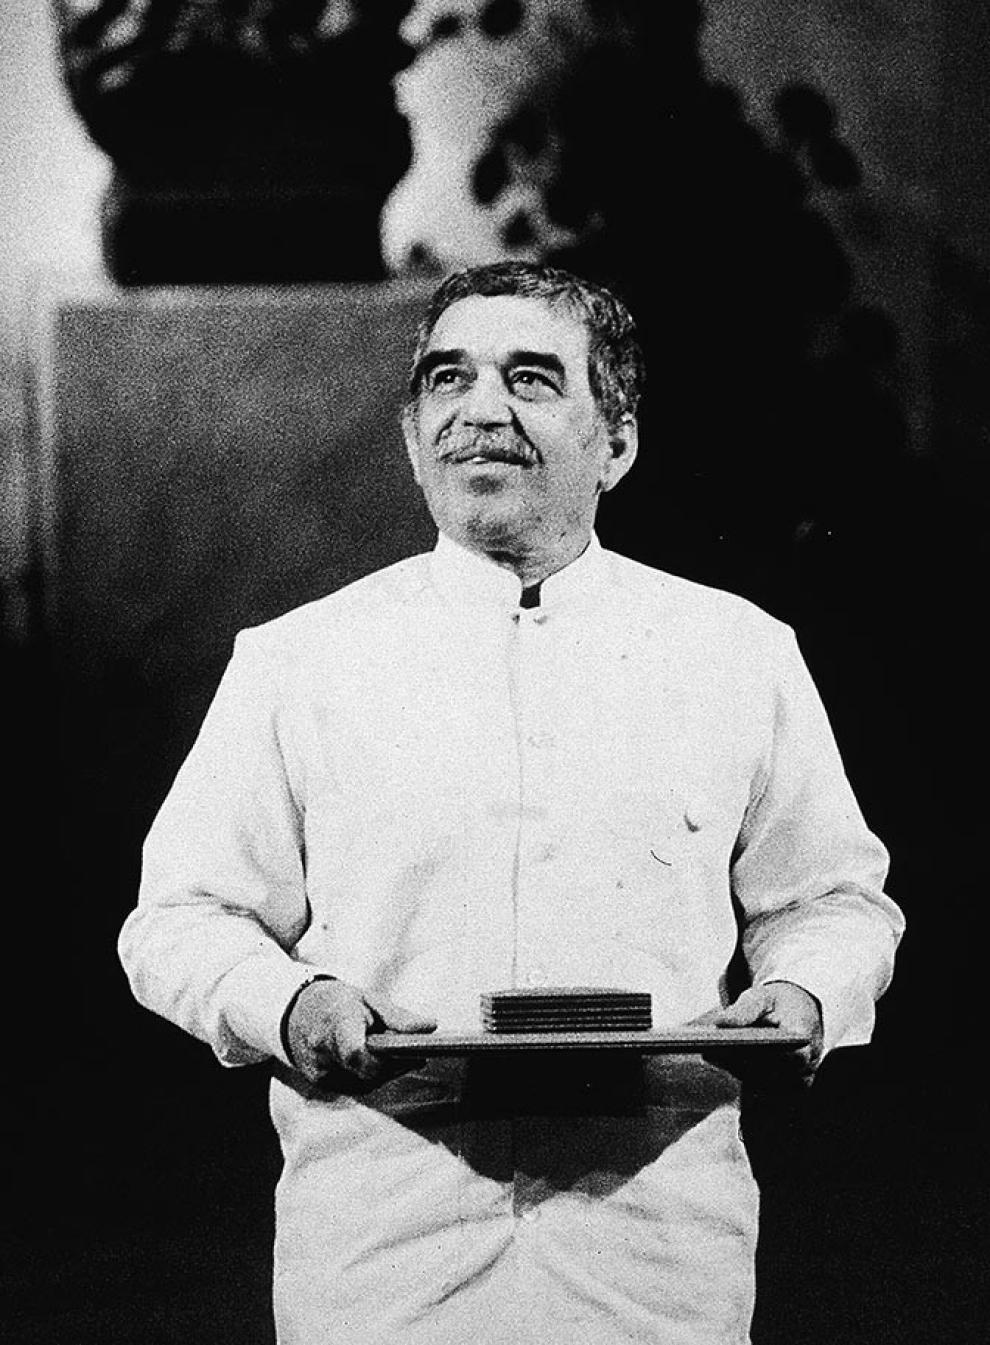 a biography of gabriel jose garcia Search in the poems of gabriel garcía márquez: gabriel josé de la concordia garcía márquez (born march 6, 1927) is a colombian novelist, short-story writer, screenwriter and journalist, known affectionately as gabo throughout latin america considered one of the most significant authors of the.